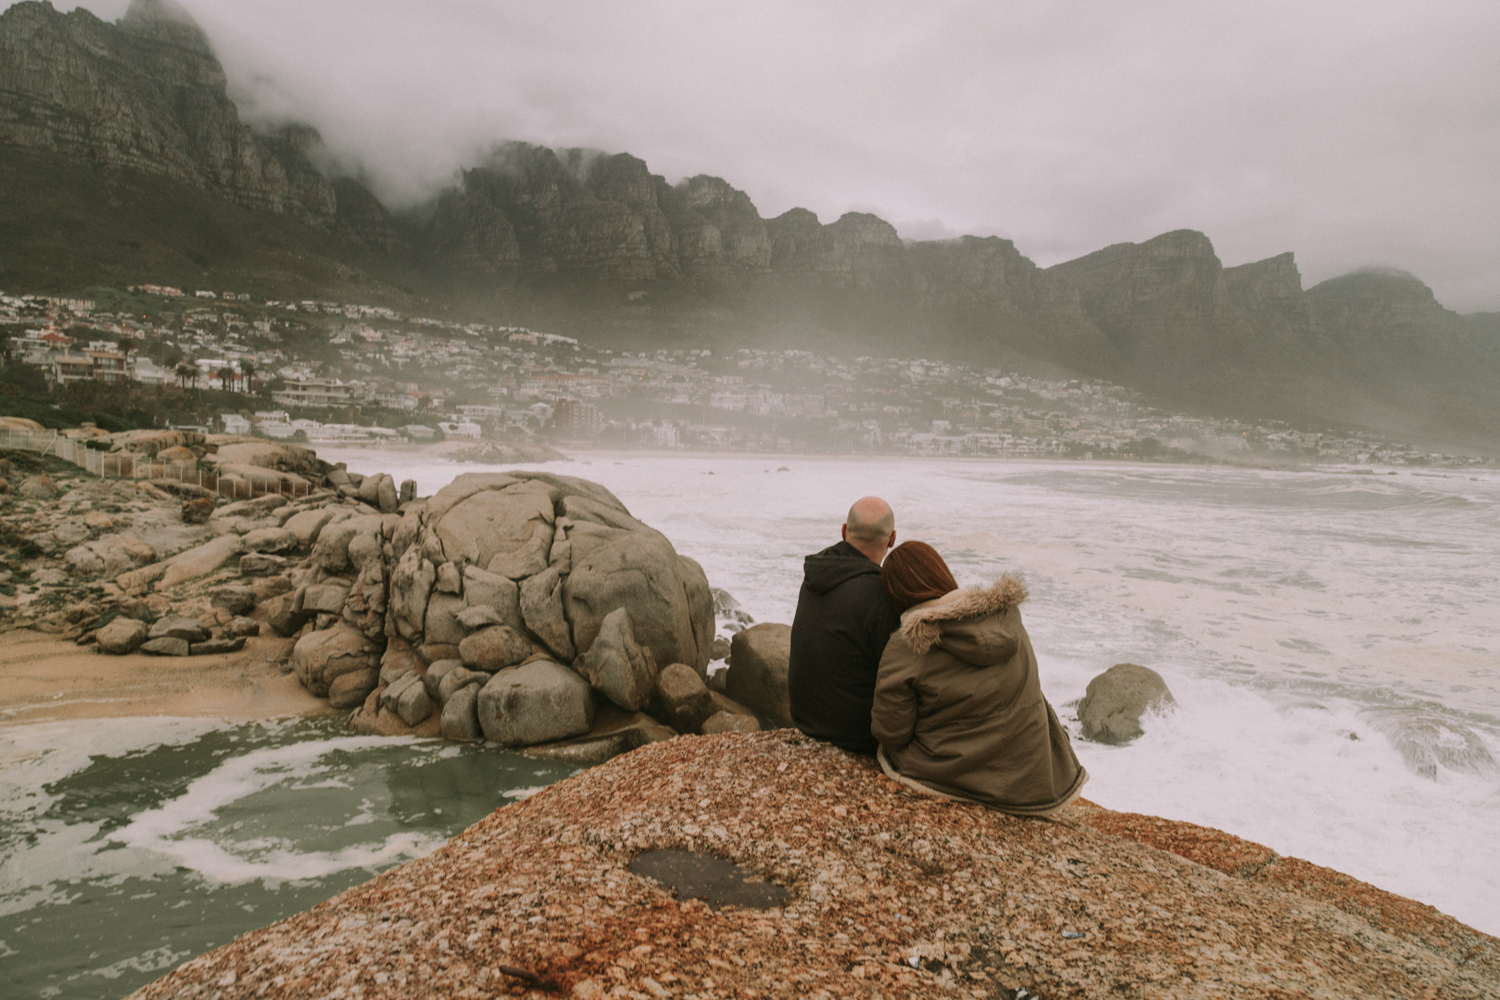 Enagagement photography Cape Town- Bianca Asher Photography-52.jpg